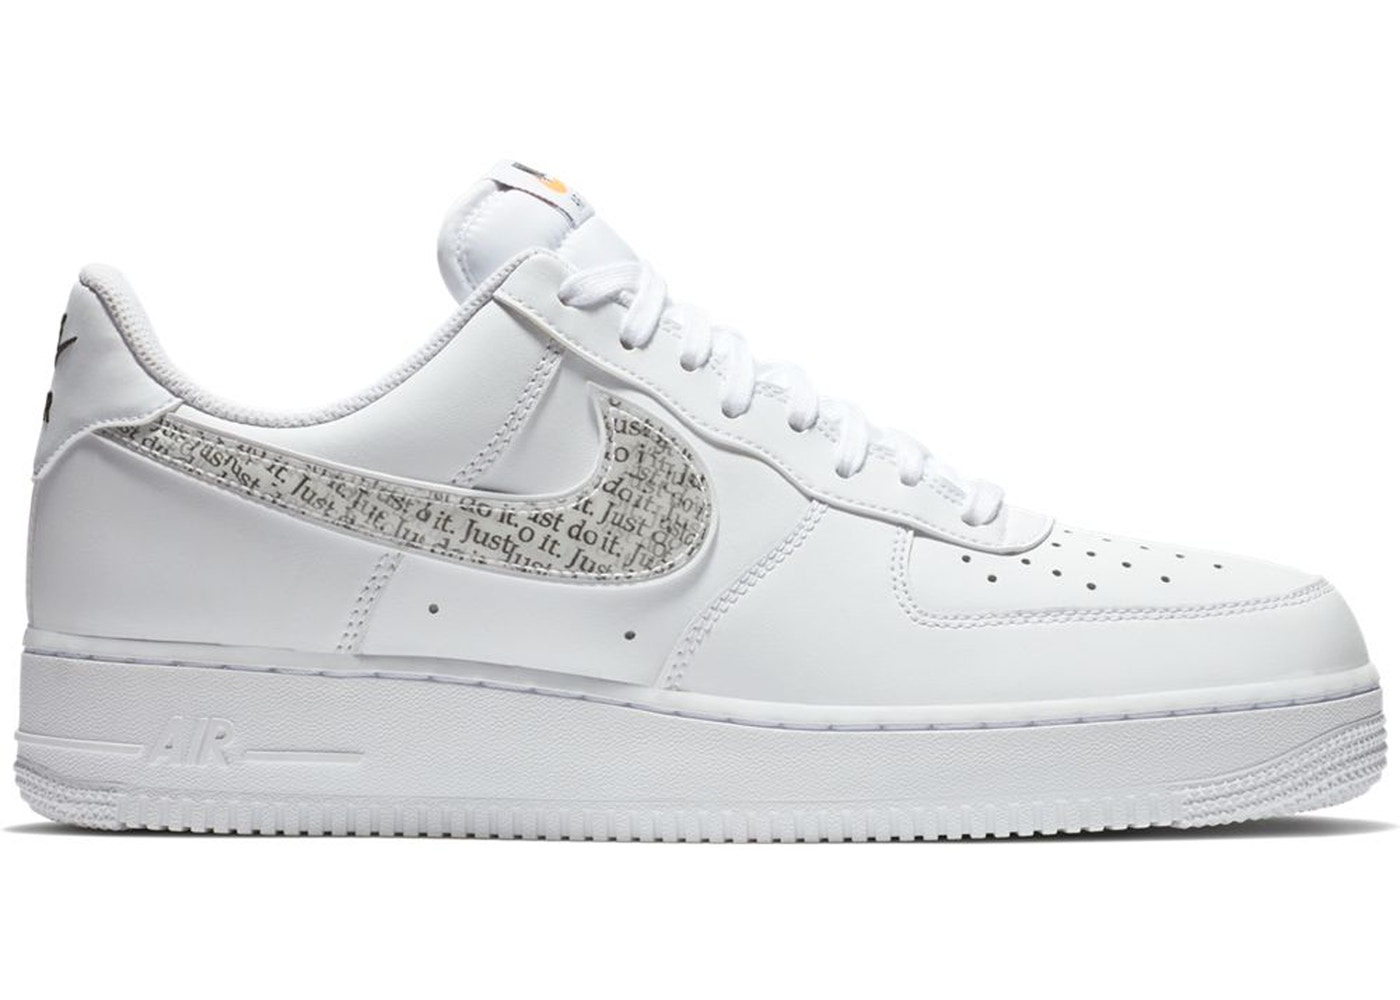 timeless design 88ae6 0f0c6 Air Force 1 Low Just Do It Pack White Clear